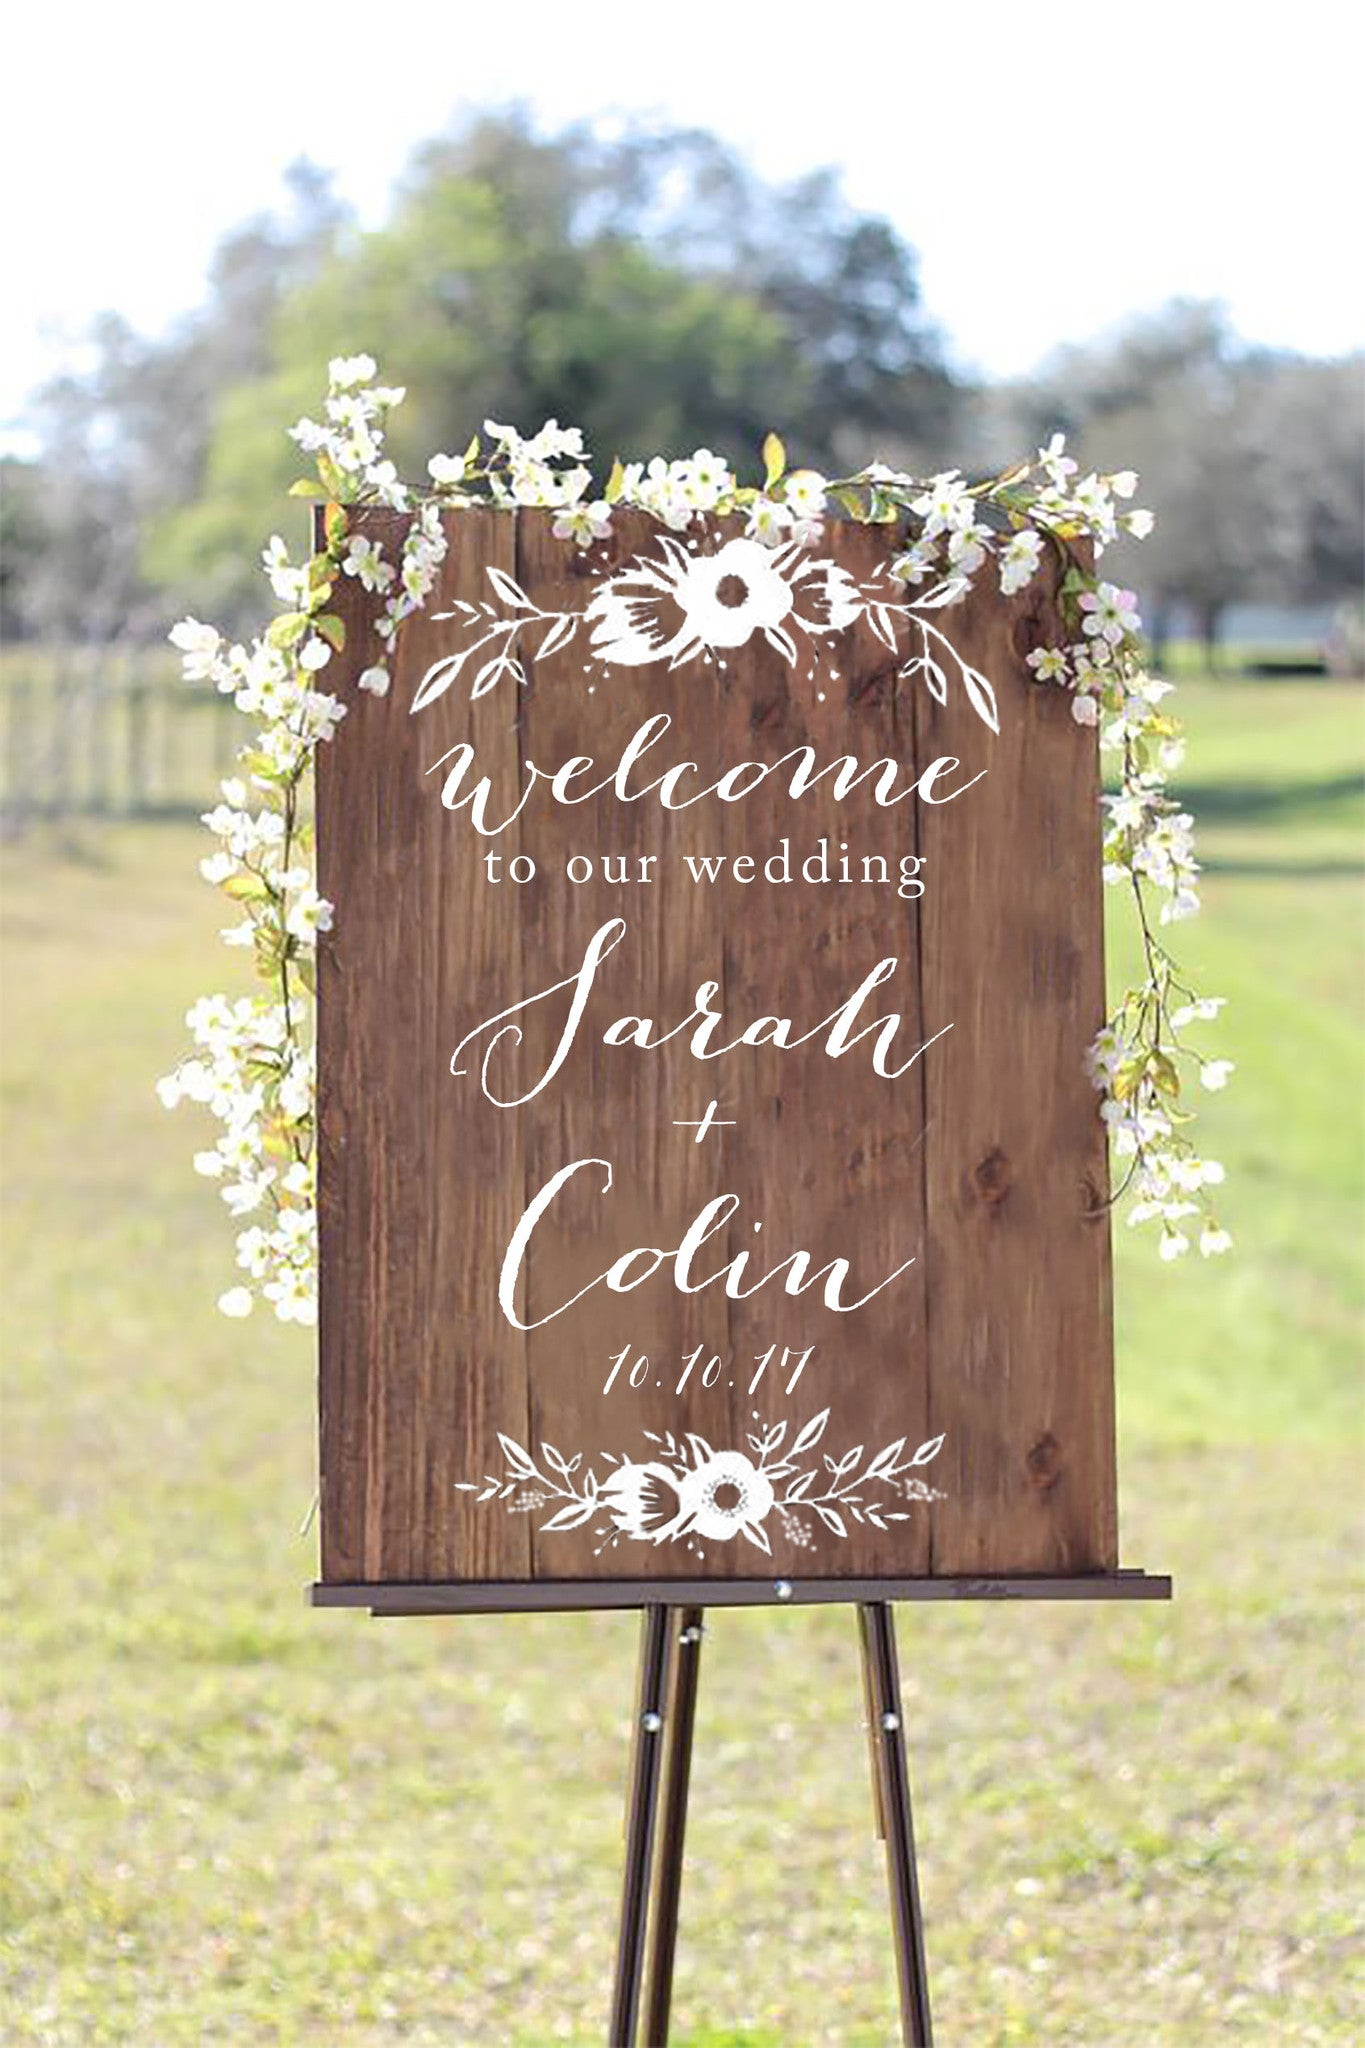 Welcome to our wedding wooden board sign welcome wedding sign welcome to our wedding wooden board sign welcome wedding sign wooden board heart and junglespirit Choice Image